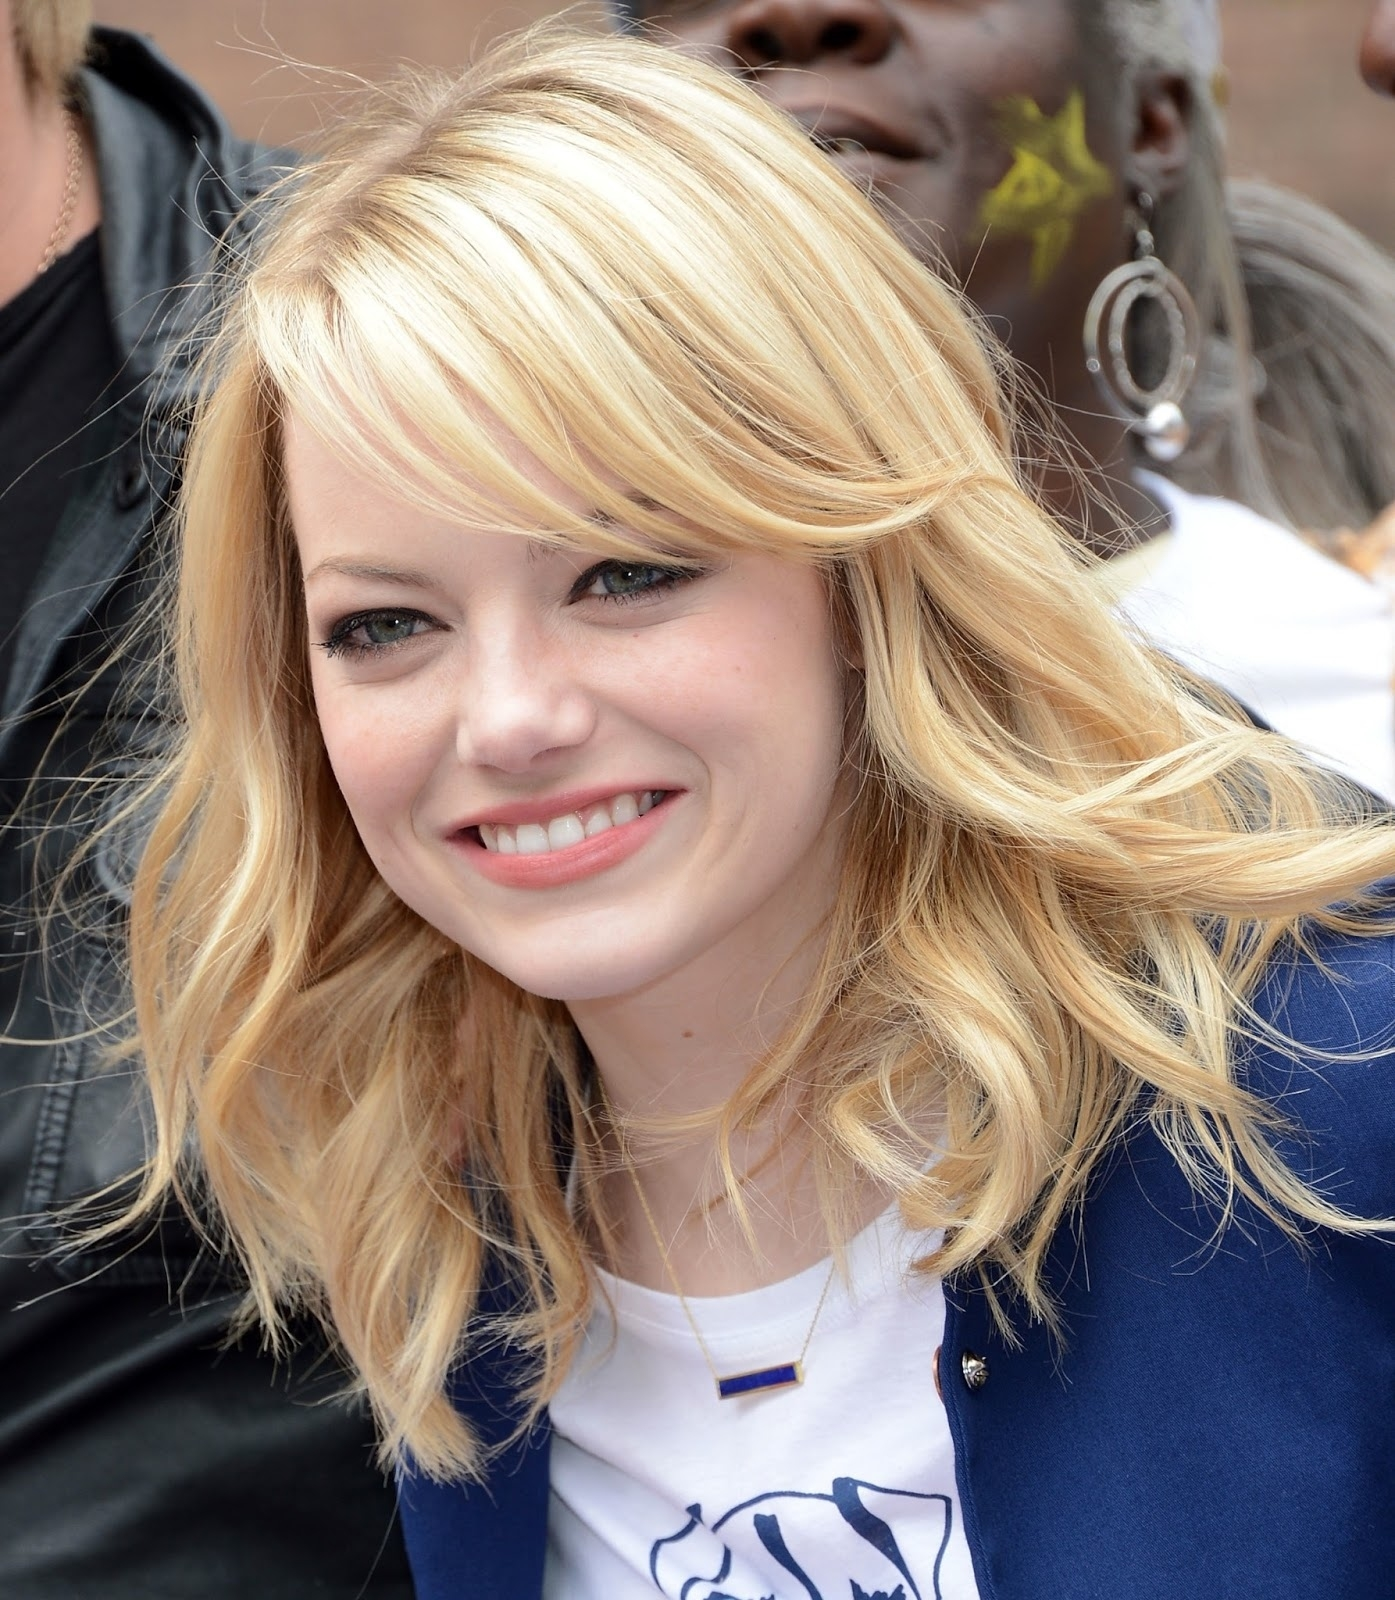 7 Best Haircuts For Round Face - Mabh Blog for Haircut For Long Hair Round Face Names